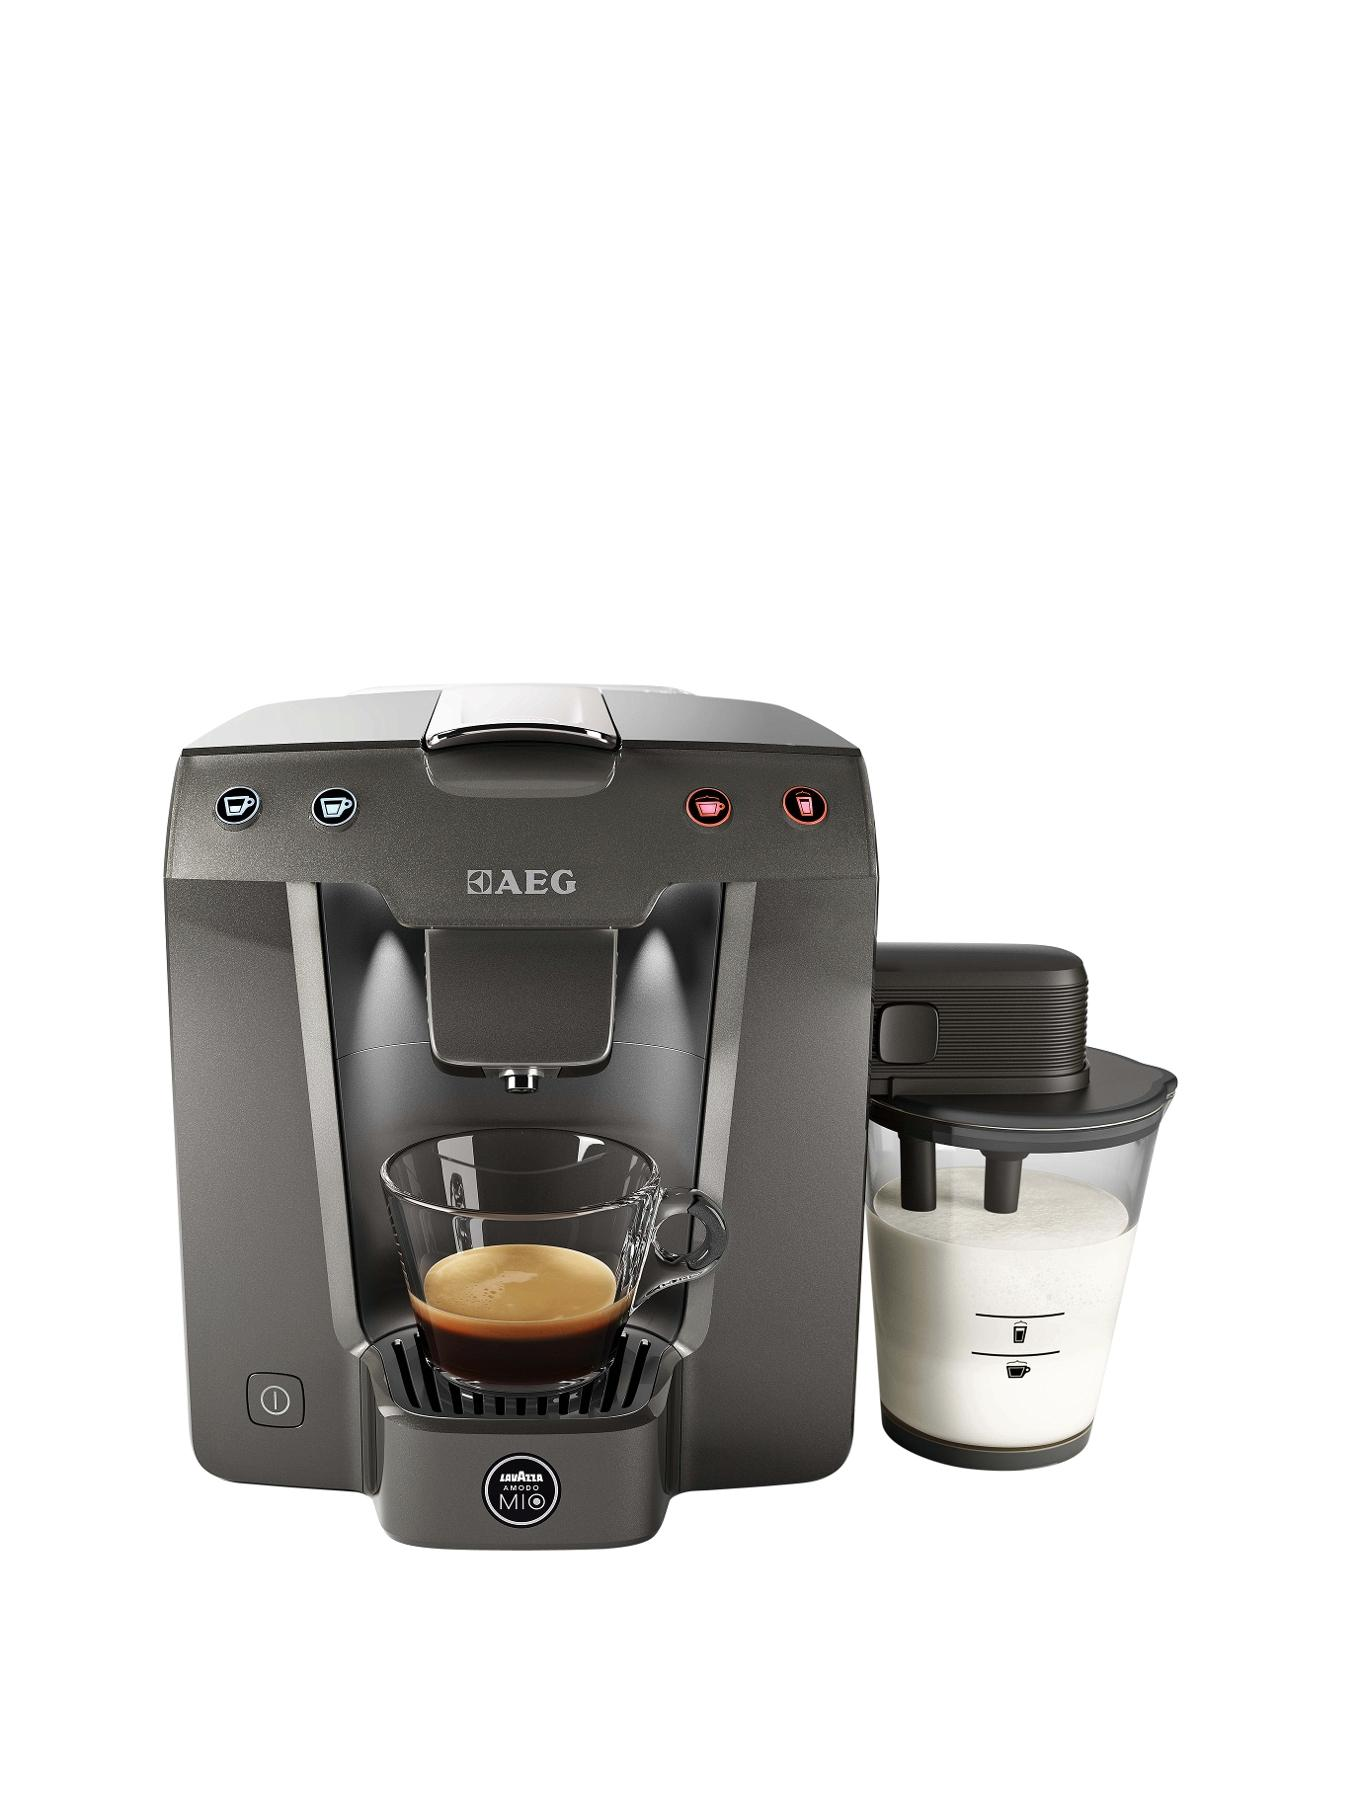 Delonghi Coffee Maker Homebase : Buy cheap Cappuccino maker - compare Coffee Makers prices for best UK deals